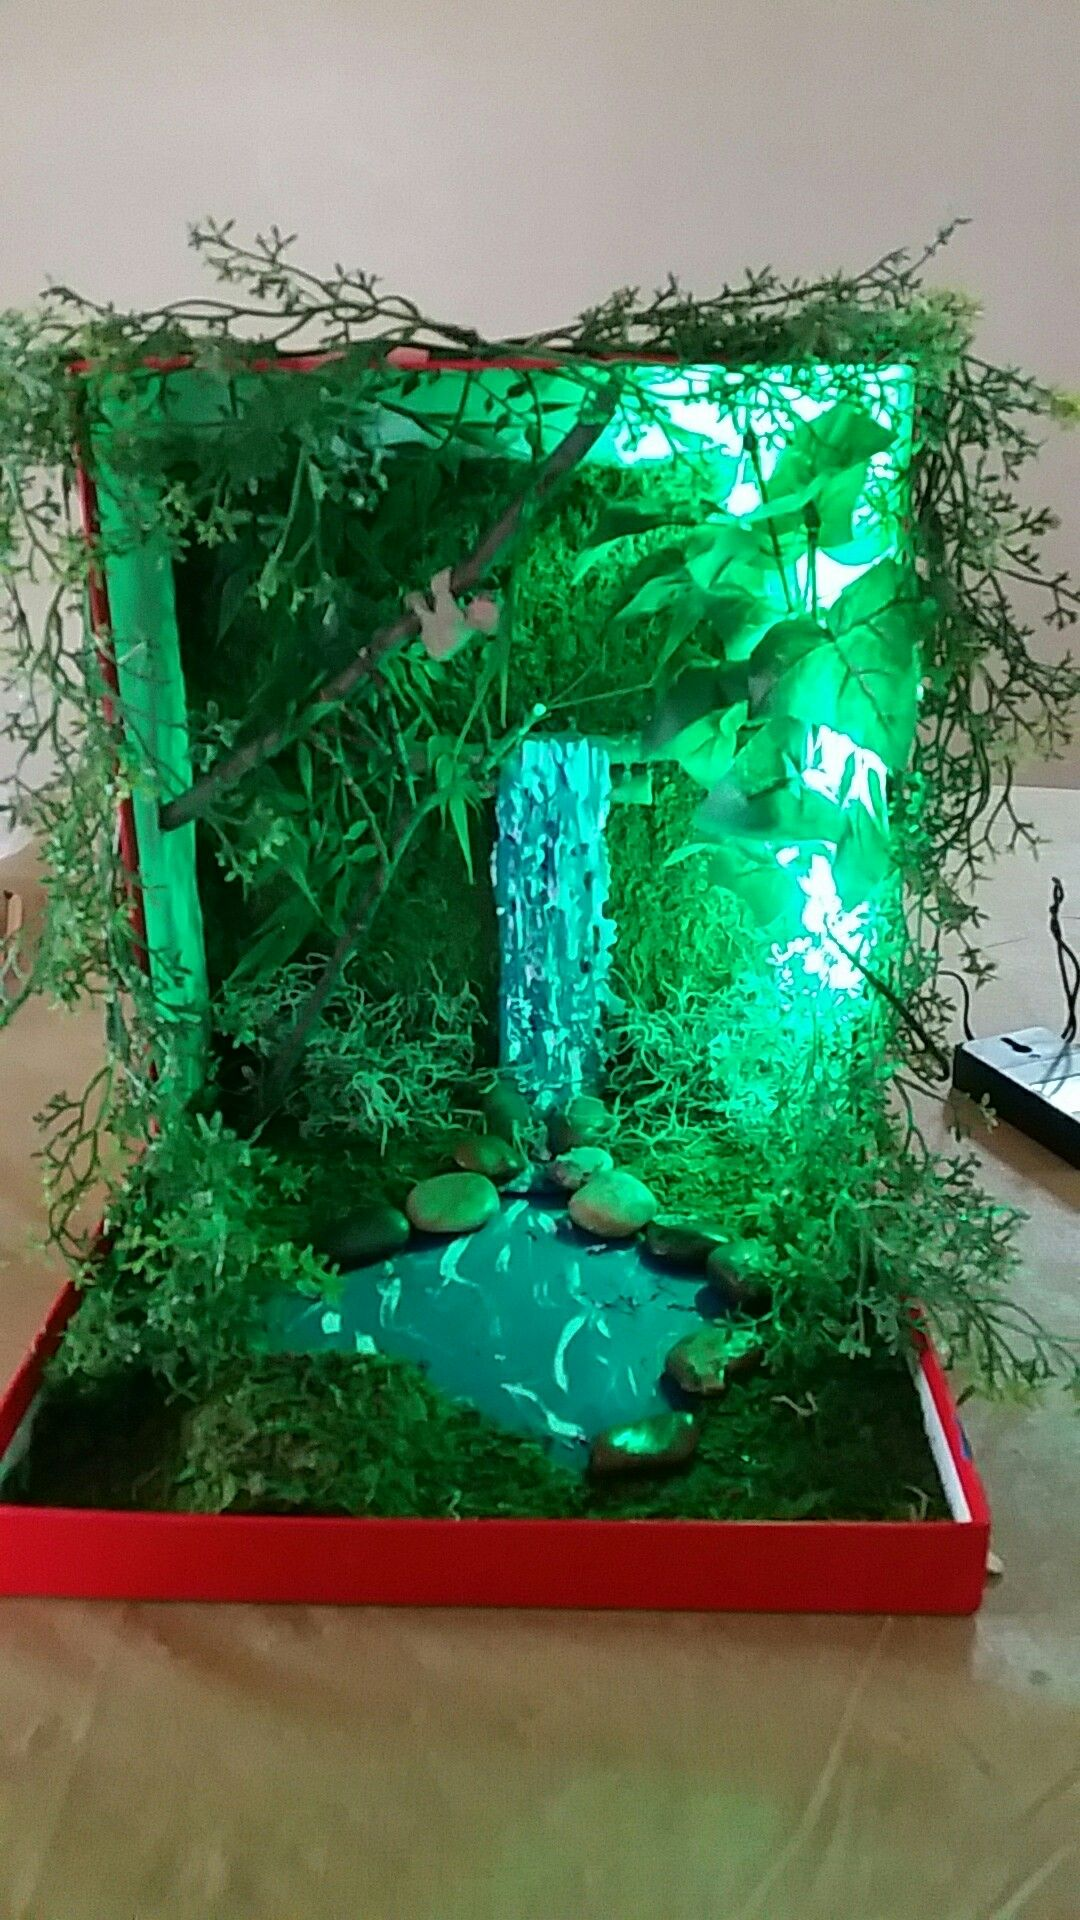 Diorama Amazon Rainforest In A Shoebox